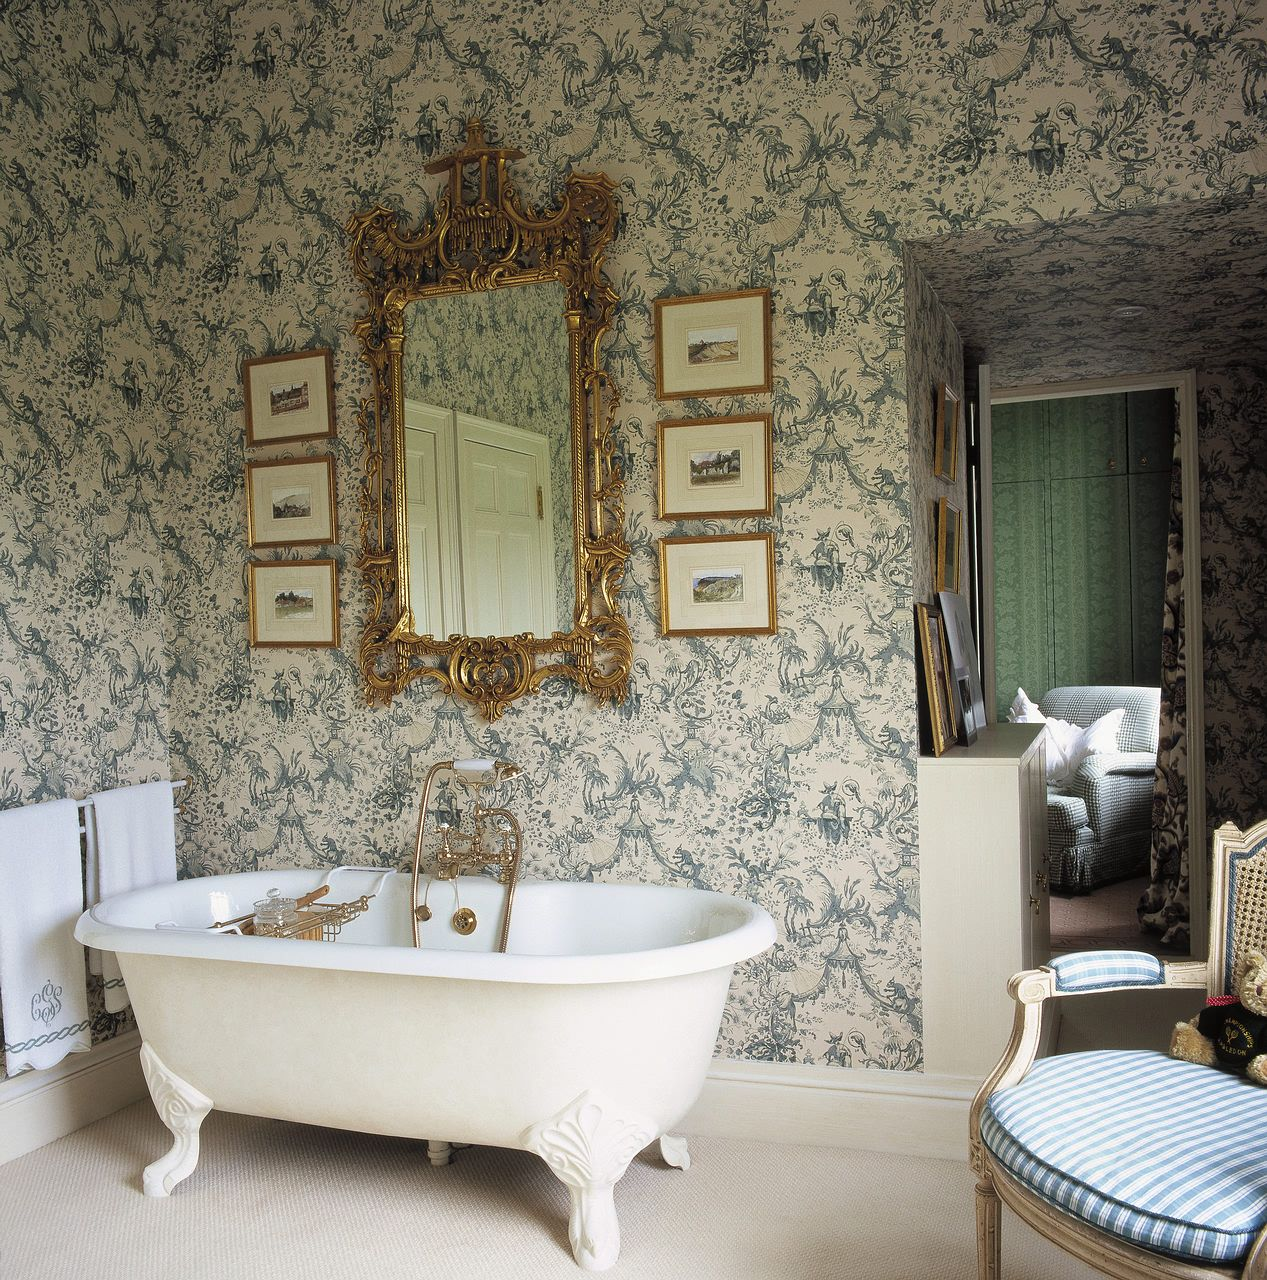 Interior Victorian Bathroom Design With Claw Foot Bathtub And Intricate Mirror Inspiration Floral Fruit